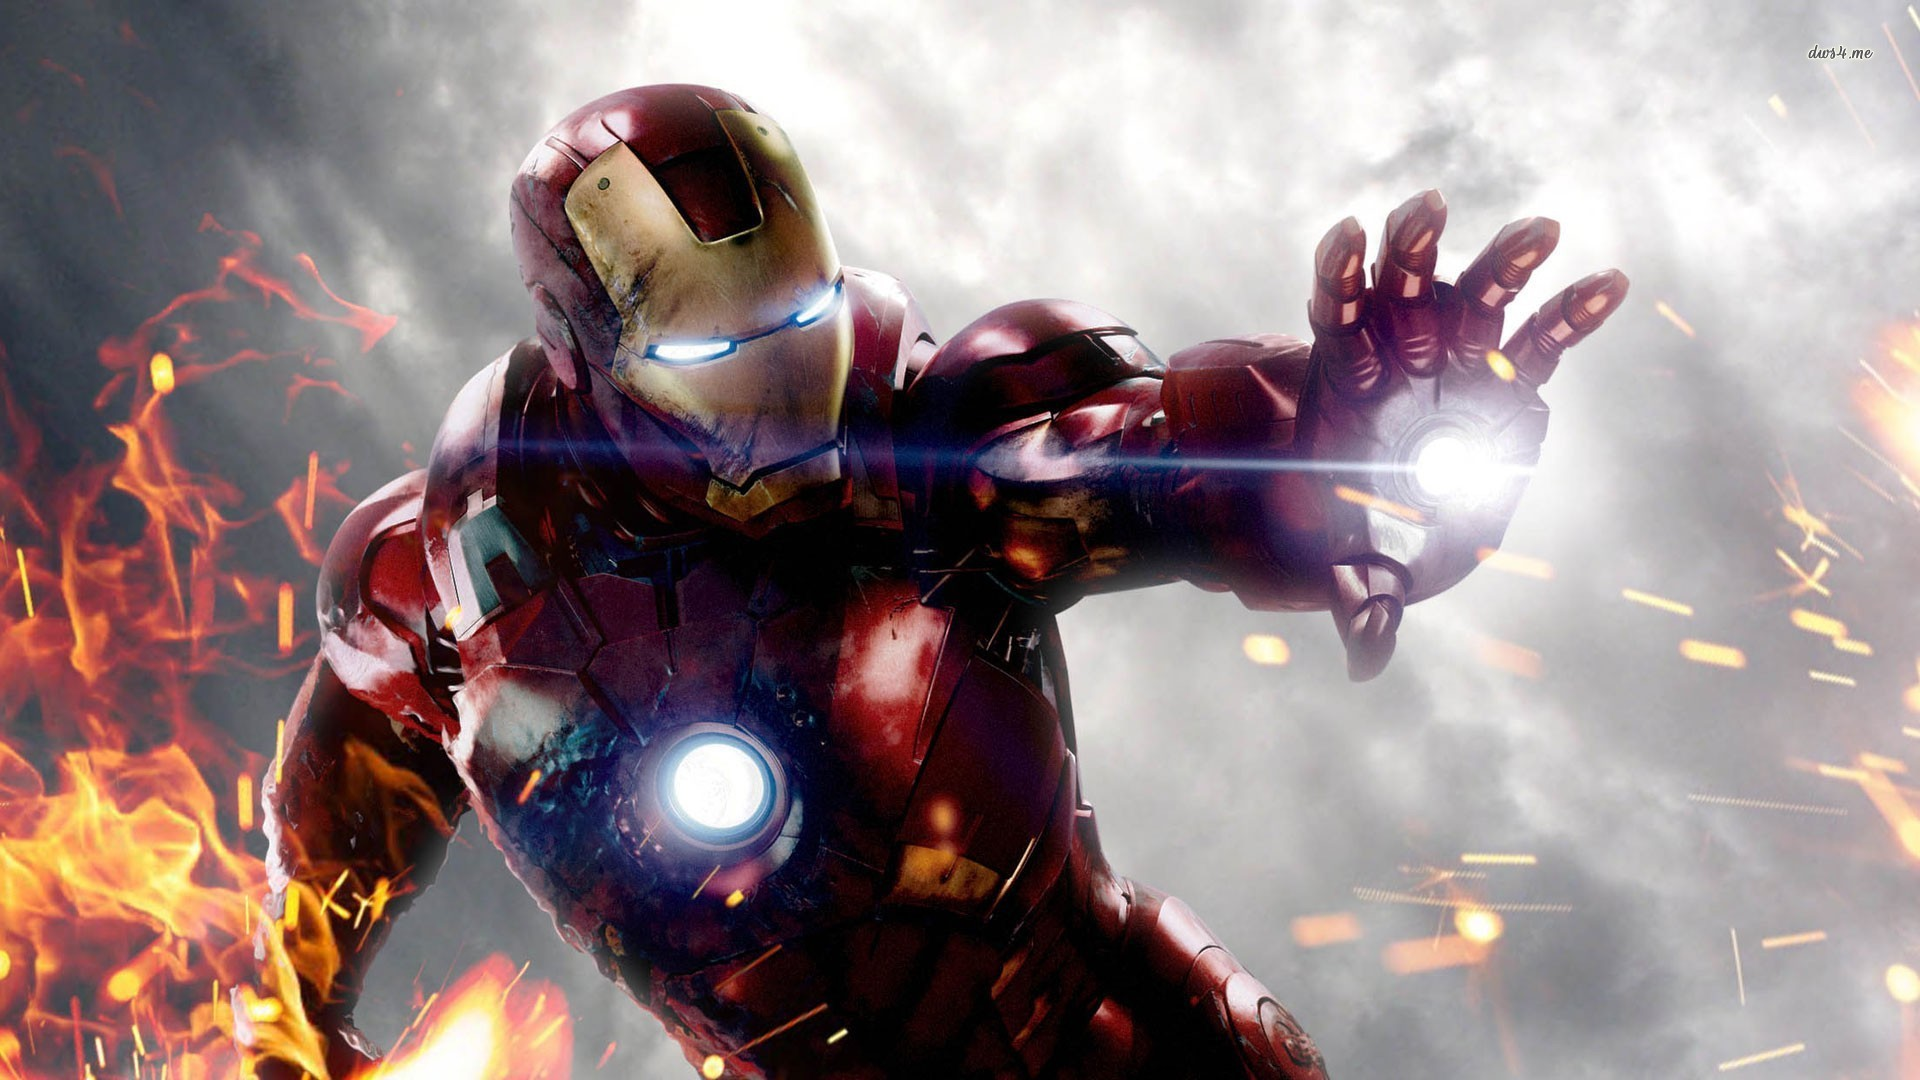 Iron Man Wallpaper  HD Game Wallpapers High Quality Game